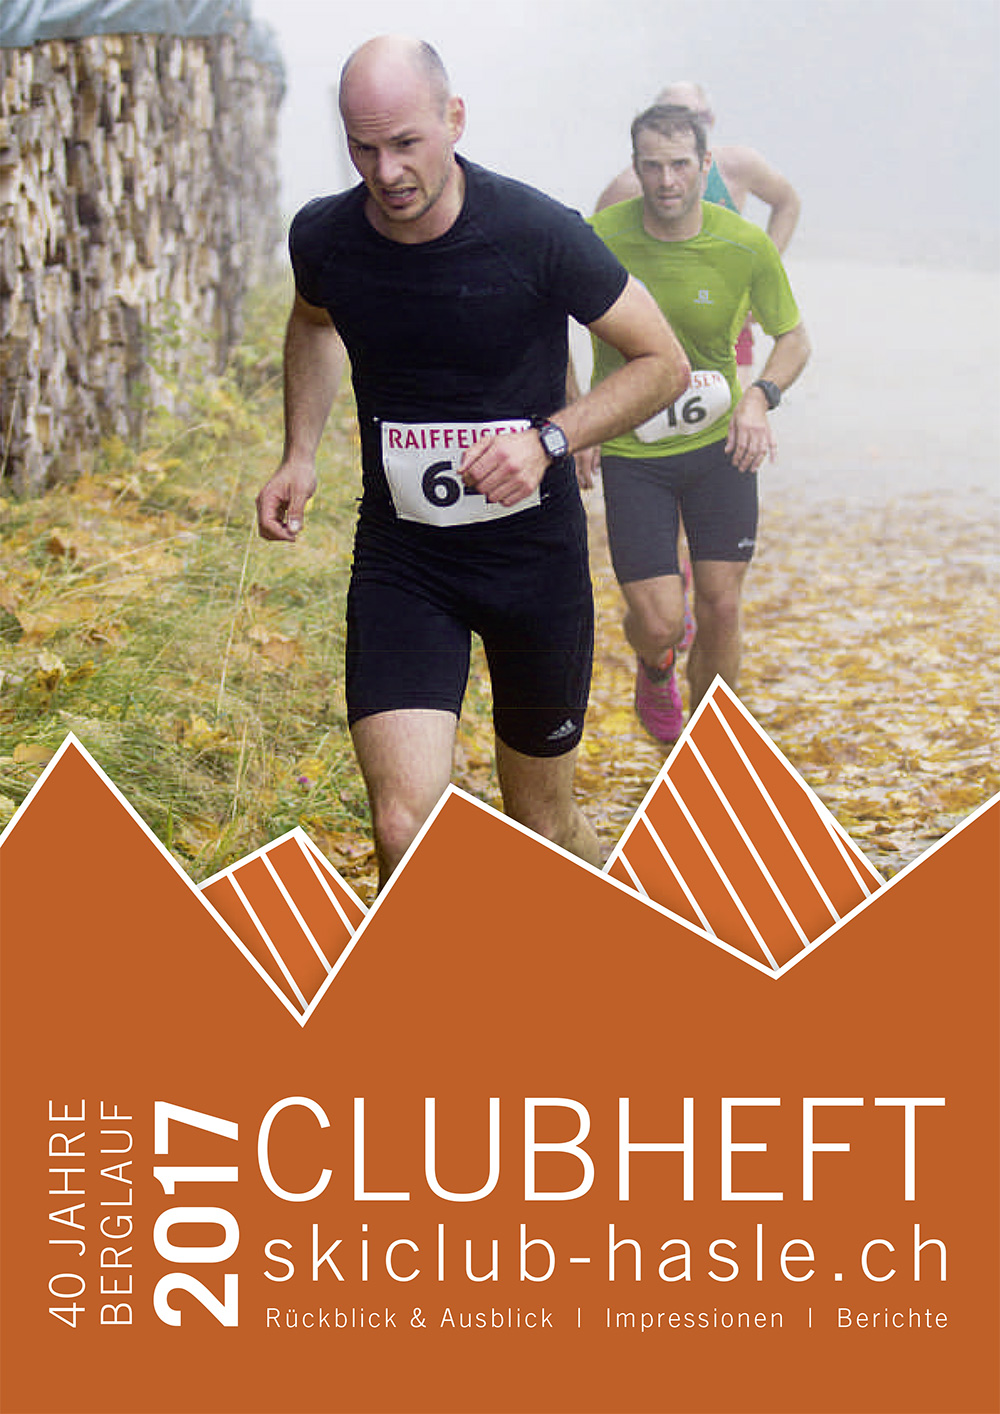 clubheft_2017_skiclub_hasle